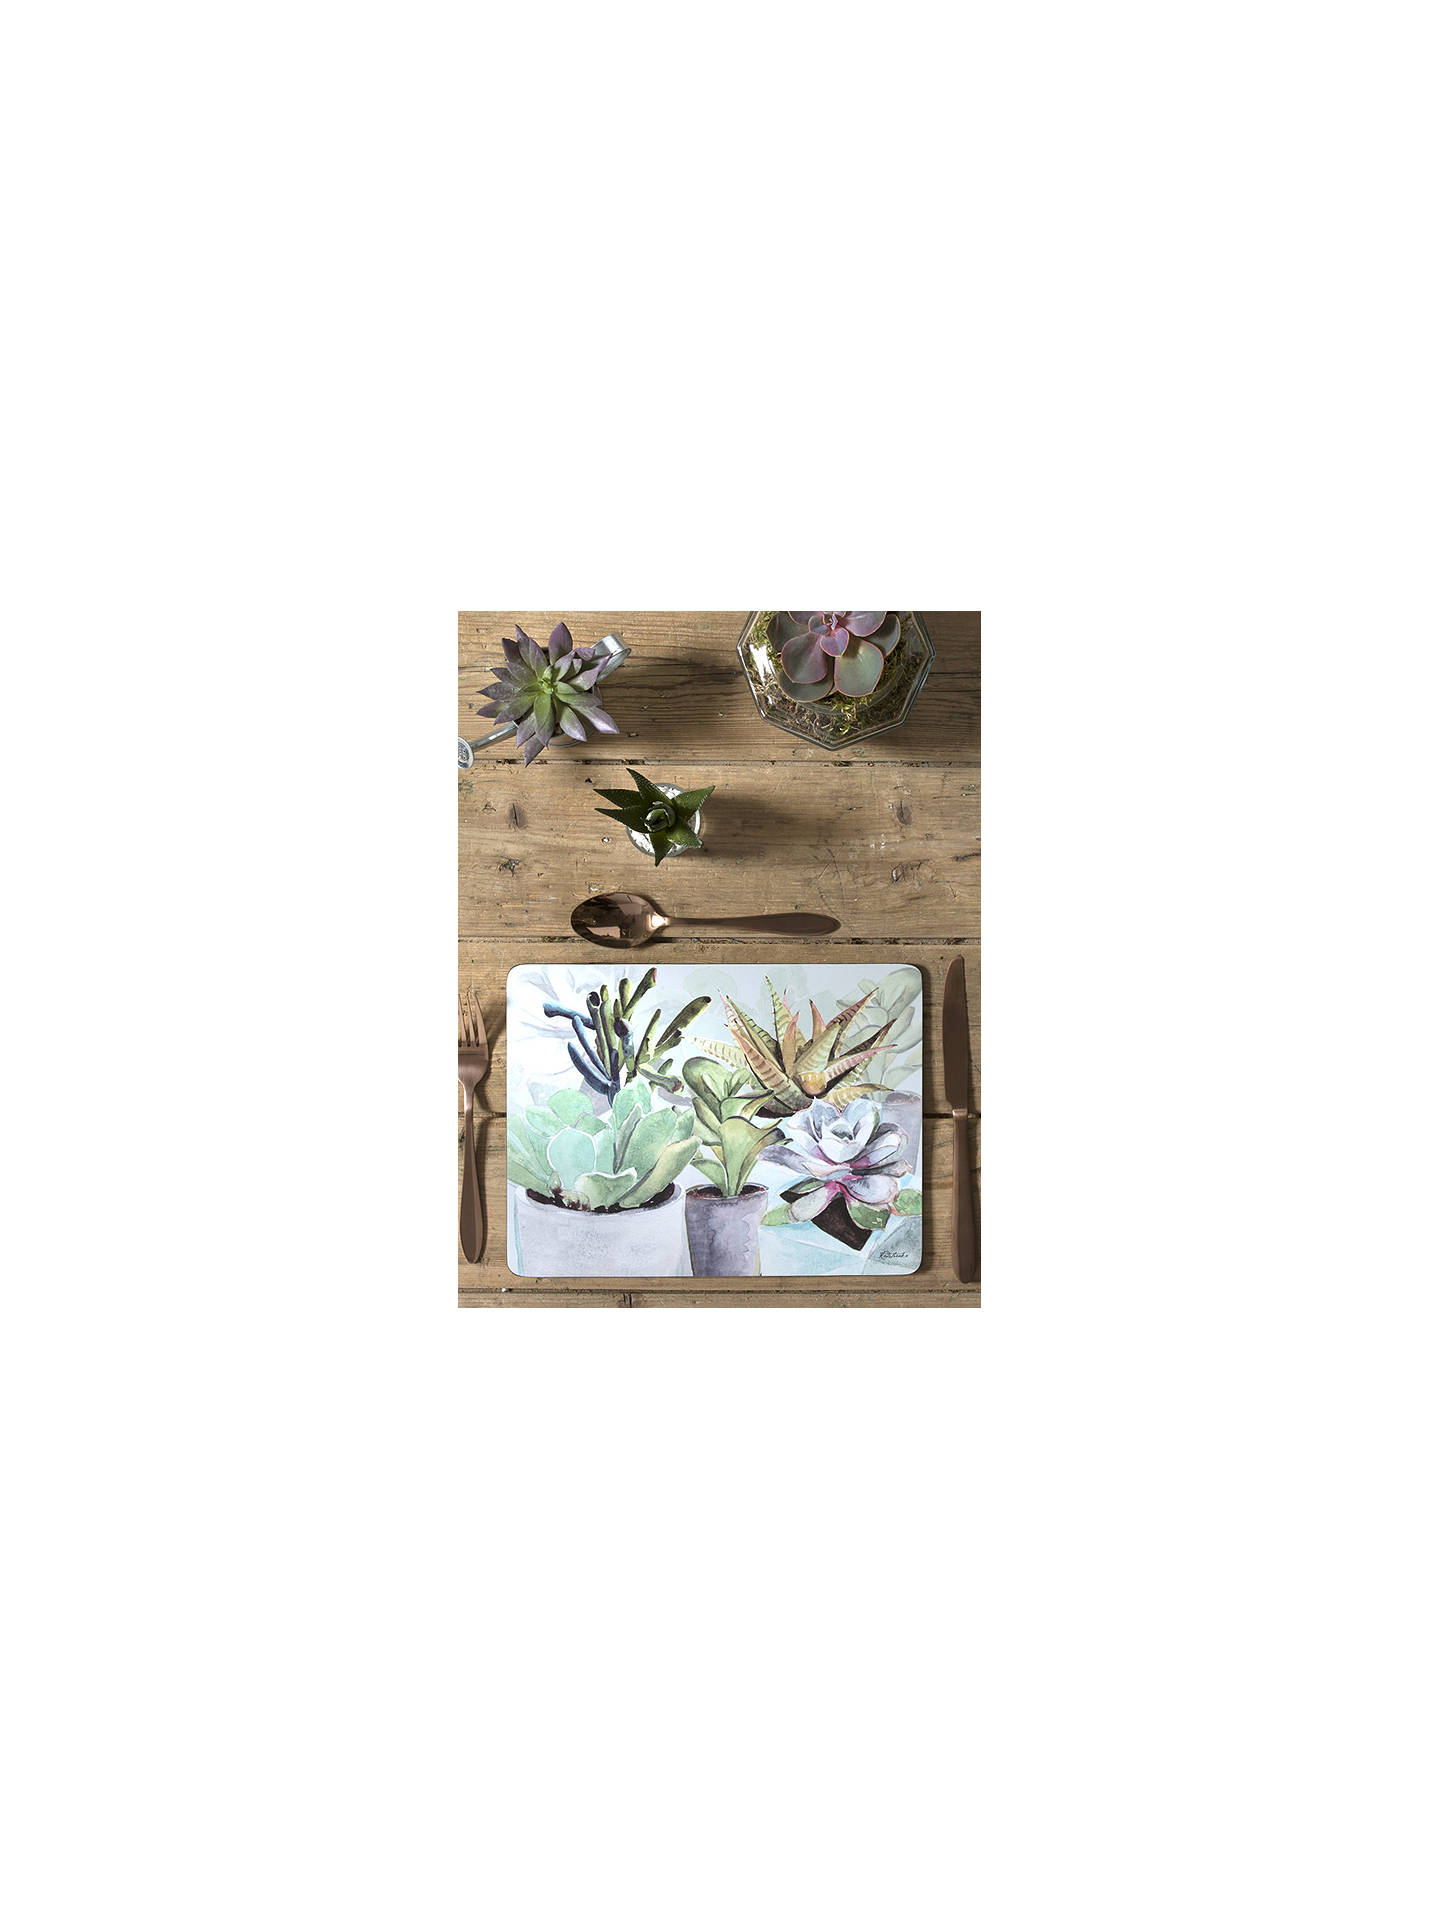 BuyPimpernel Succulent Plant Coasters, Set of 6 Online at johnlewis.com